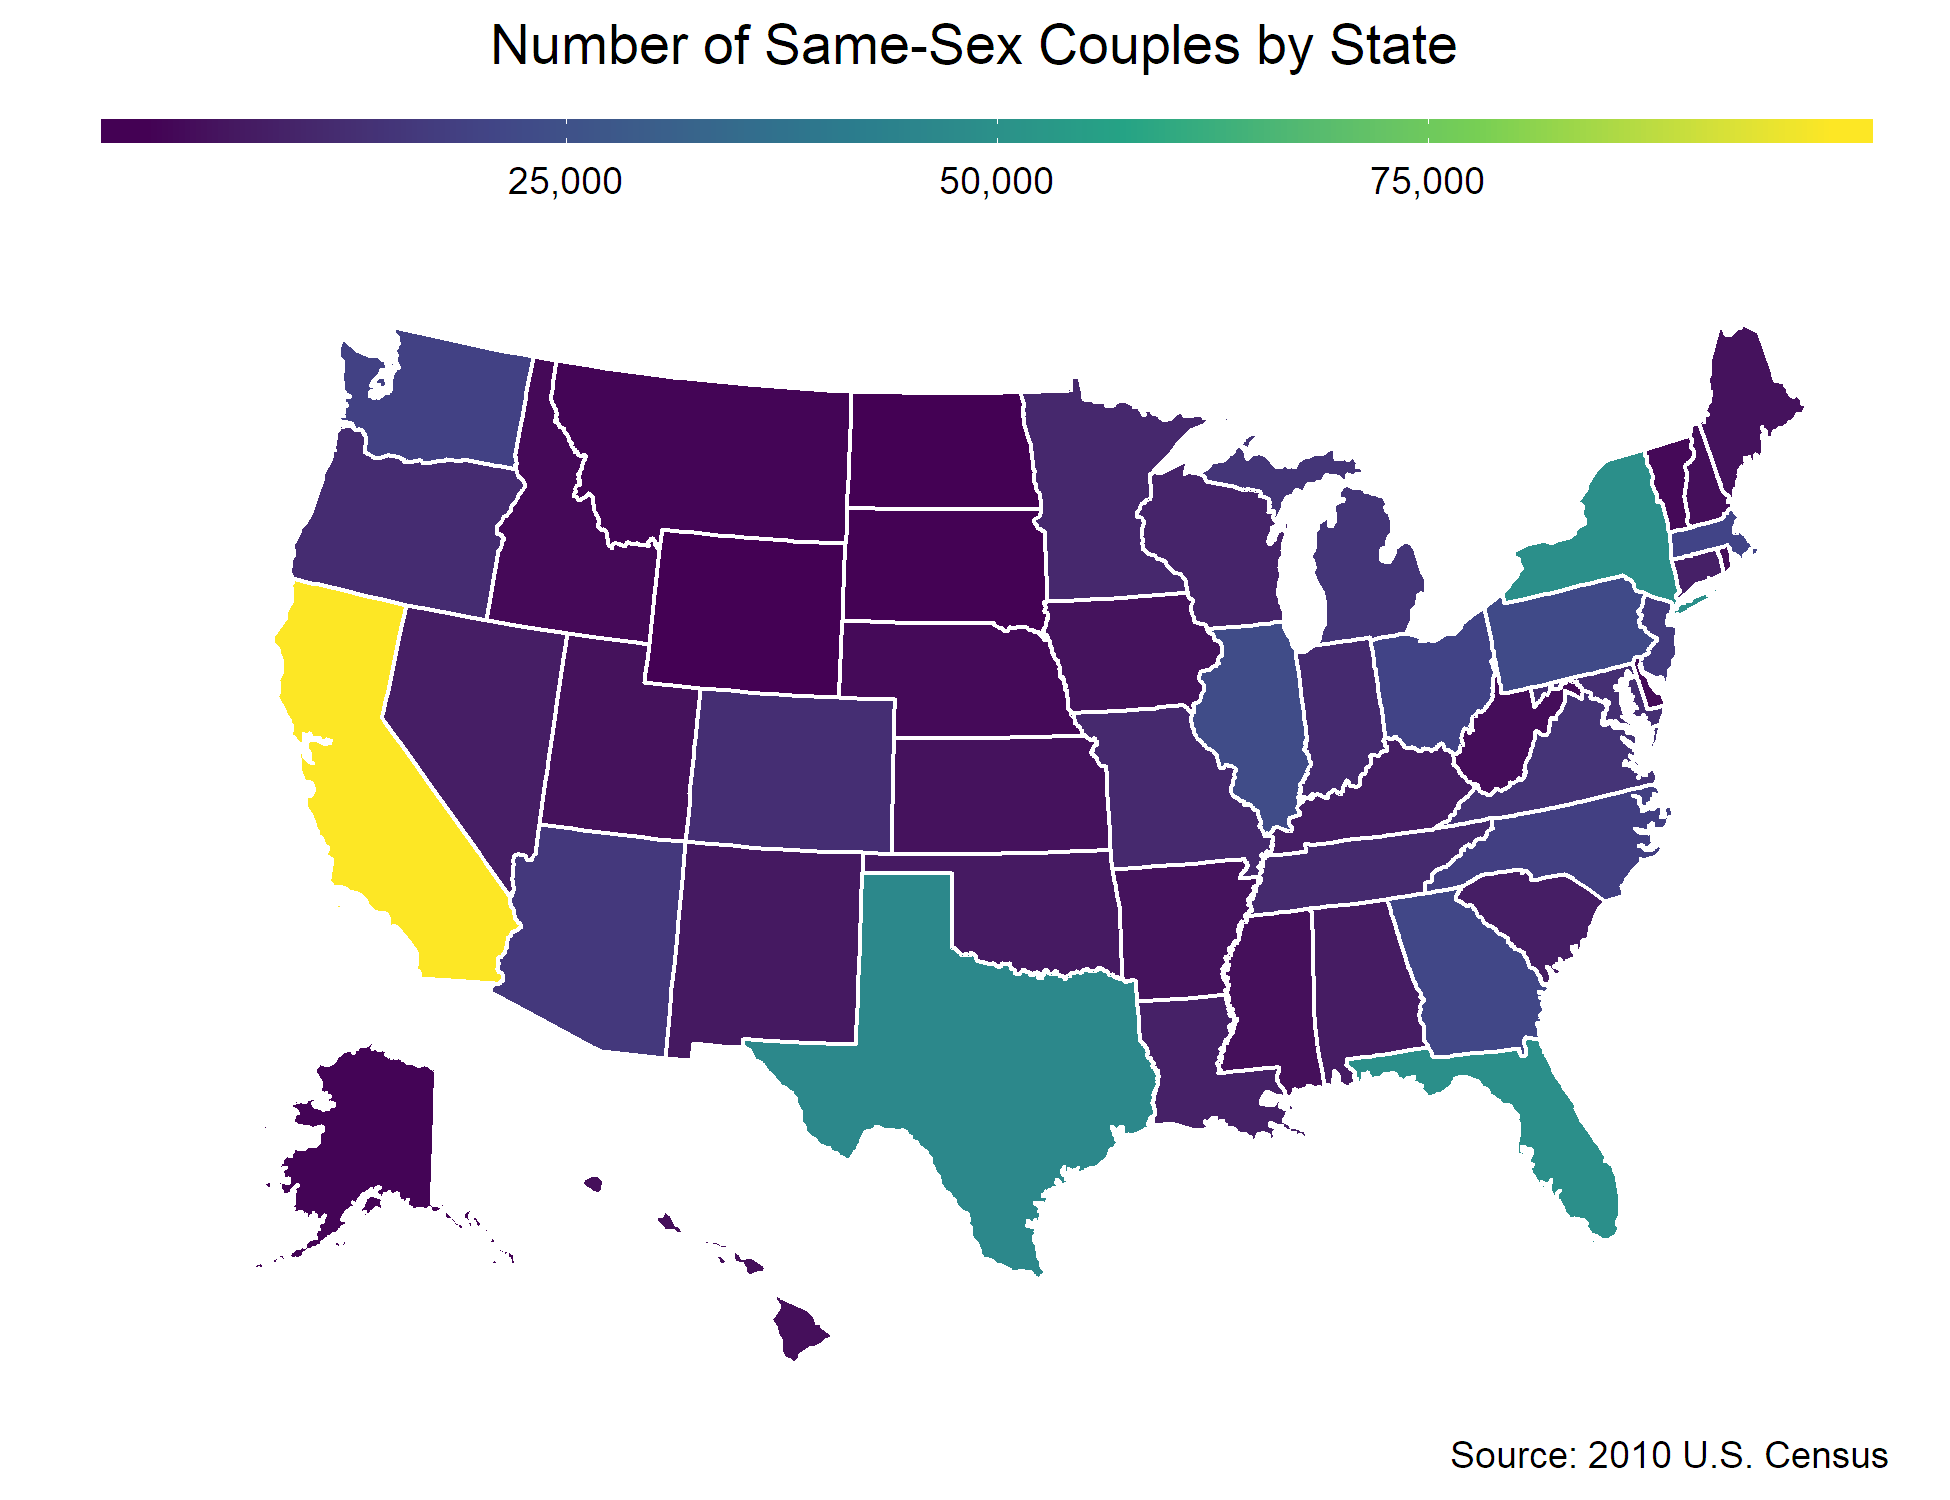 Figure 5. Distribution of same-sex couples across the United States.